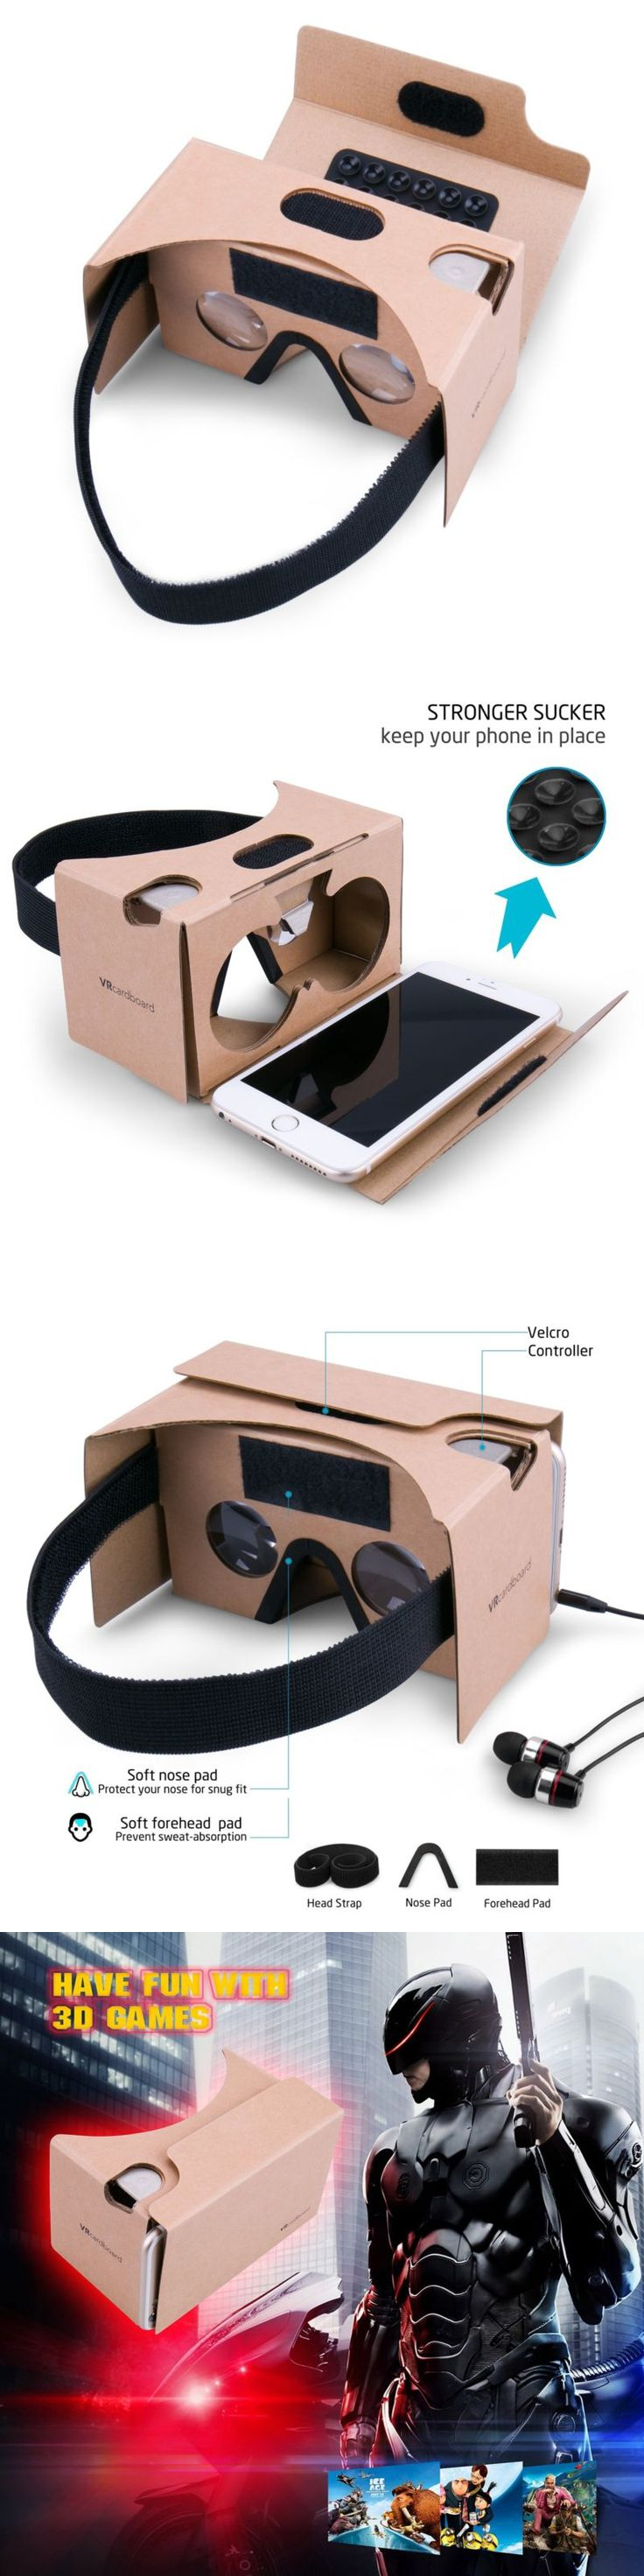 3D TV Glasses and Accessories: Google Cardboard, Splaks 3D Vr Virtual Reality Glasses V2 With Sucker Head Strap -> BUY IT NOW ONLY: $32.83 on eBay!